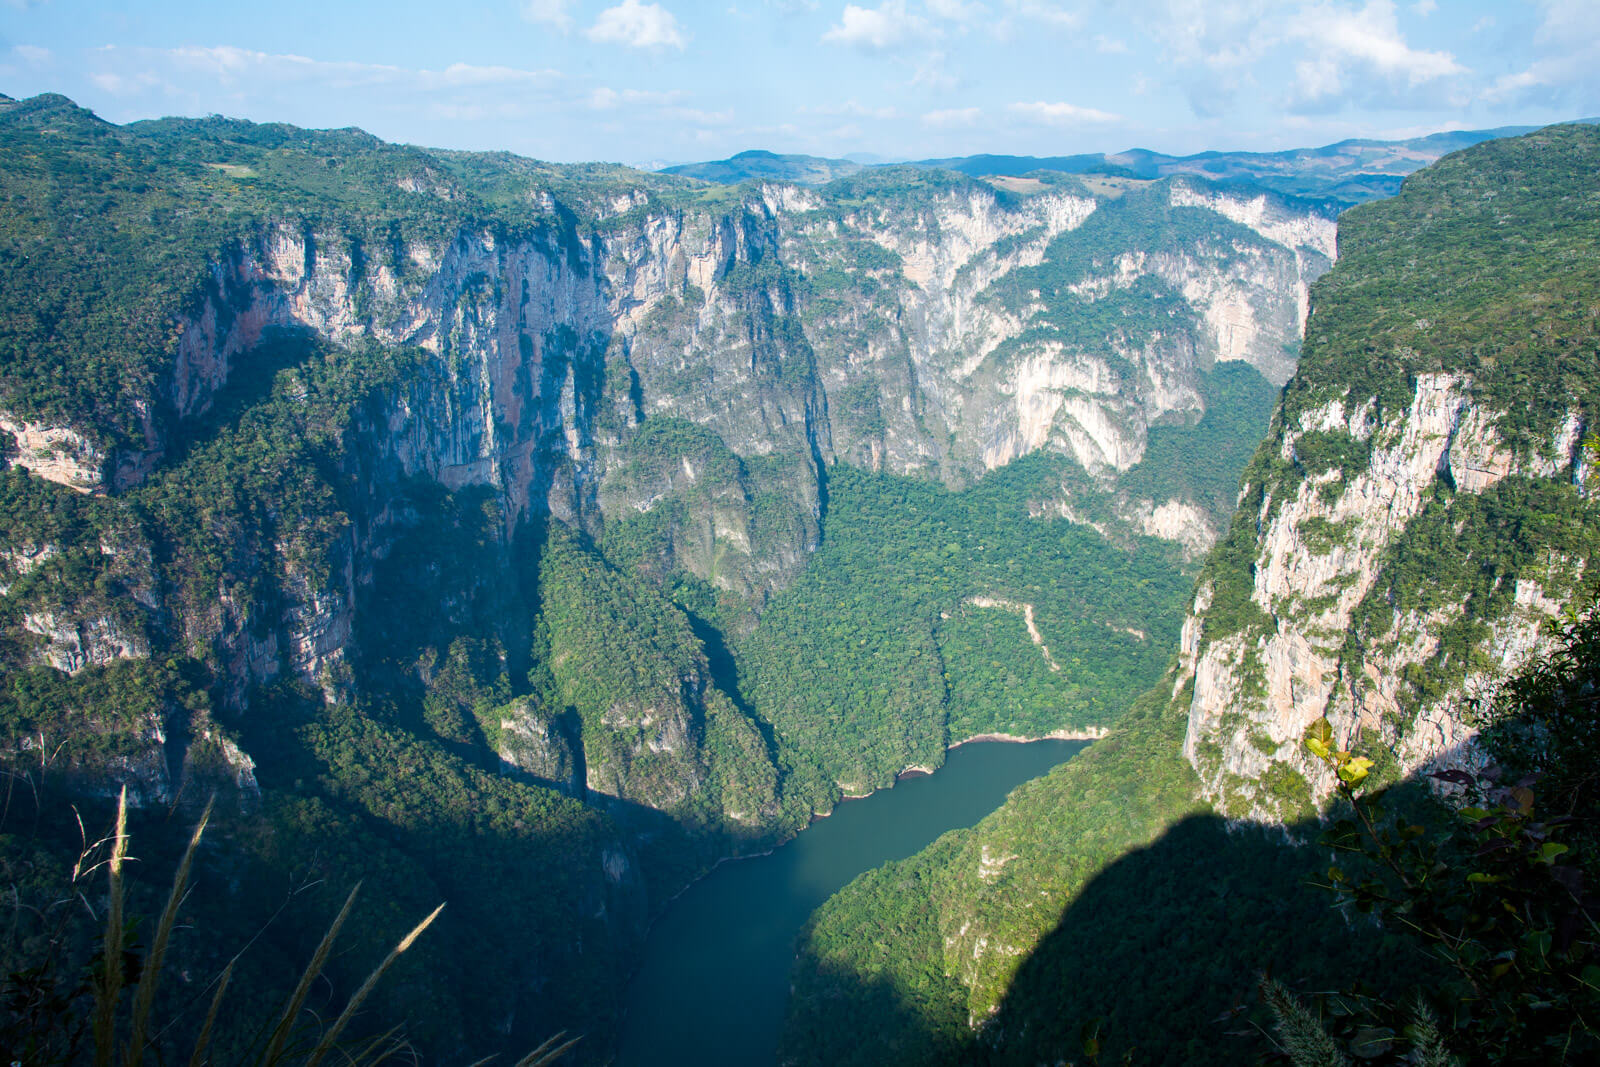 A visit to the Sumidero Canyon isn't complete without the panoramic viewpoints